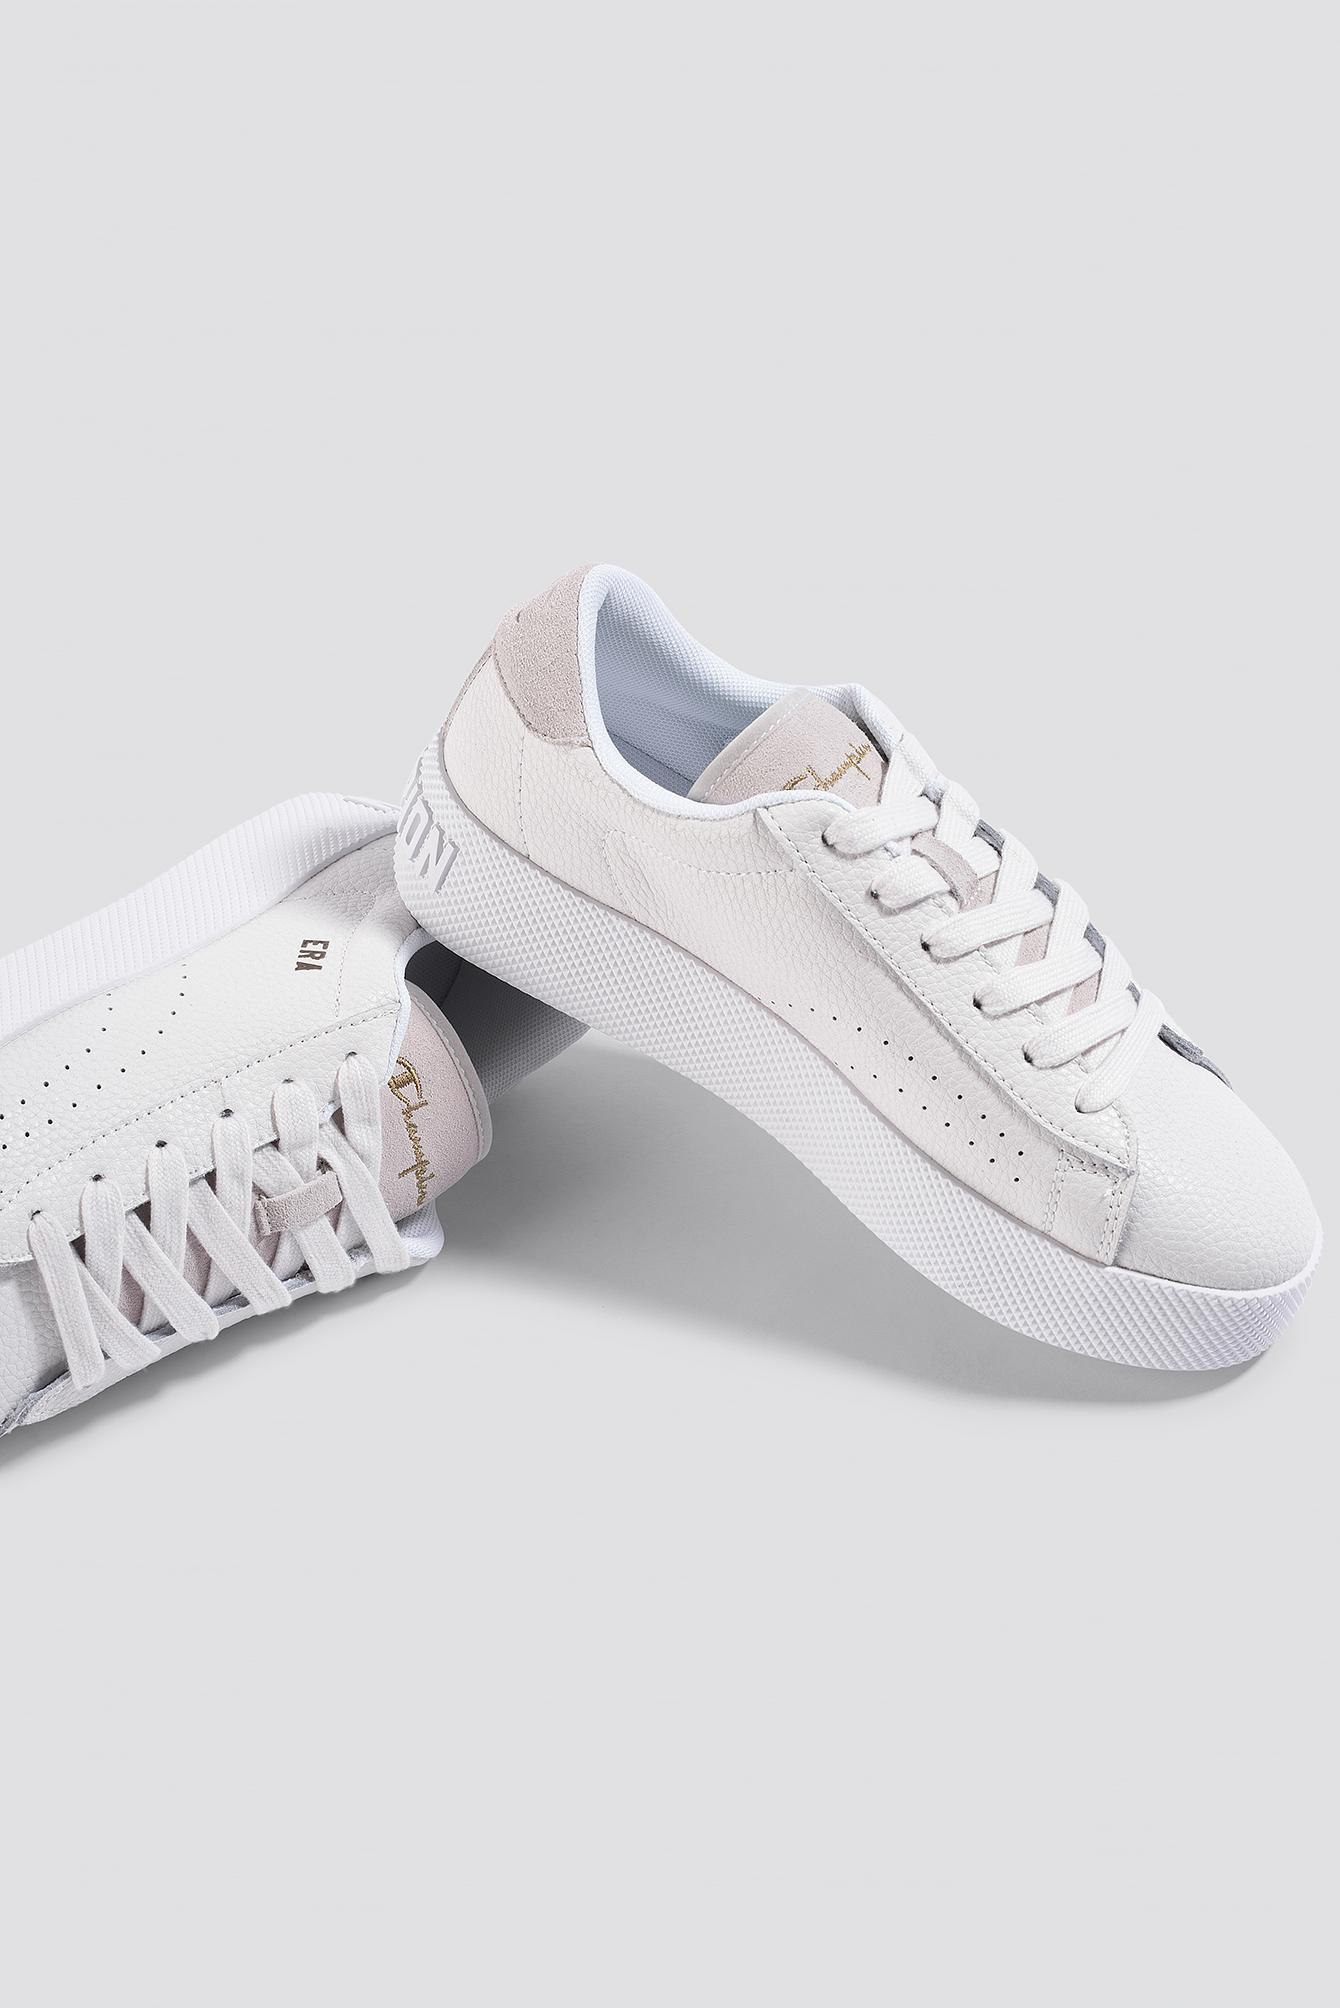 a0d0e807e7b9d Lyst - Champion Era Leather Sneaker S10535 White in White